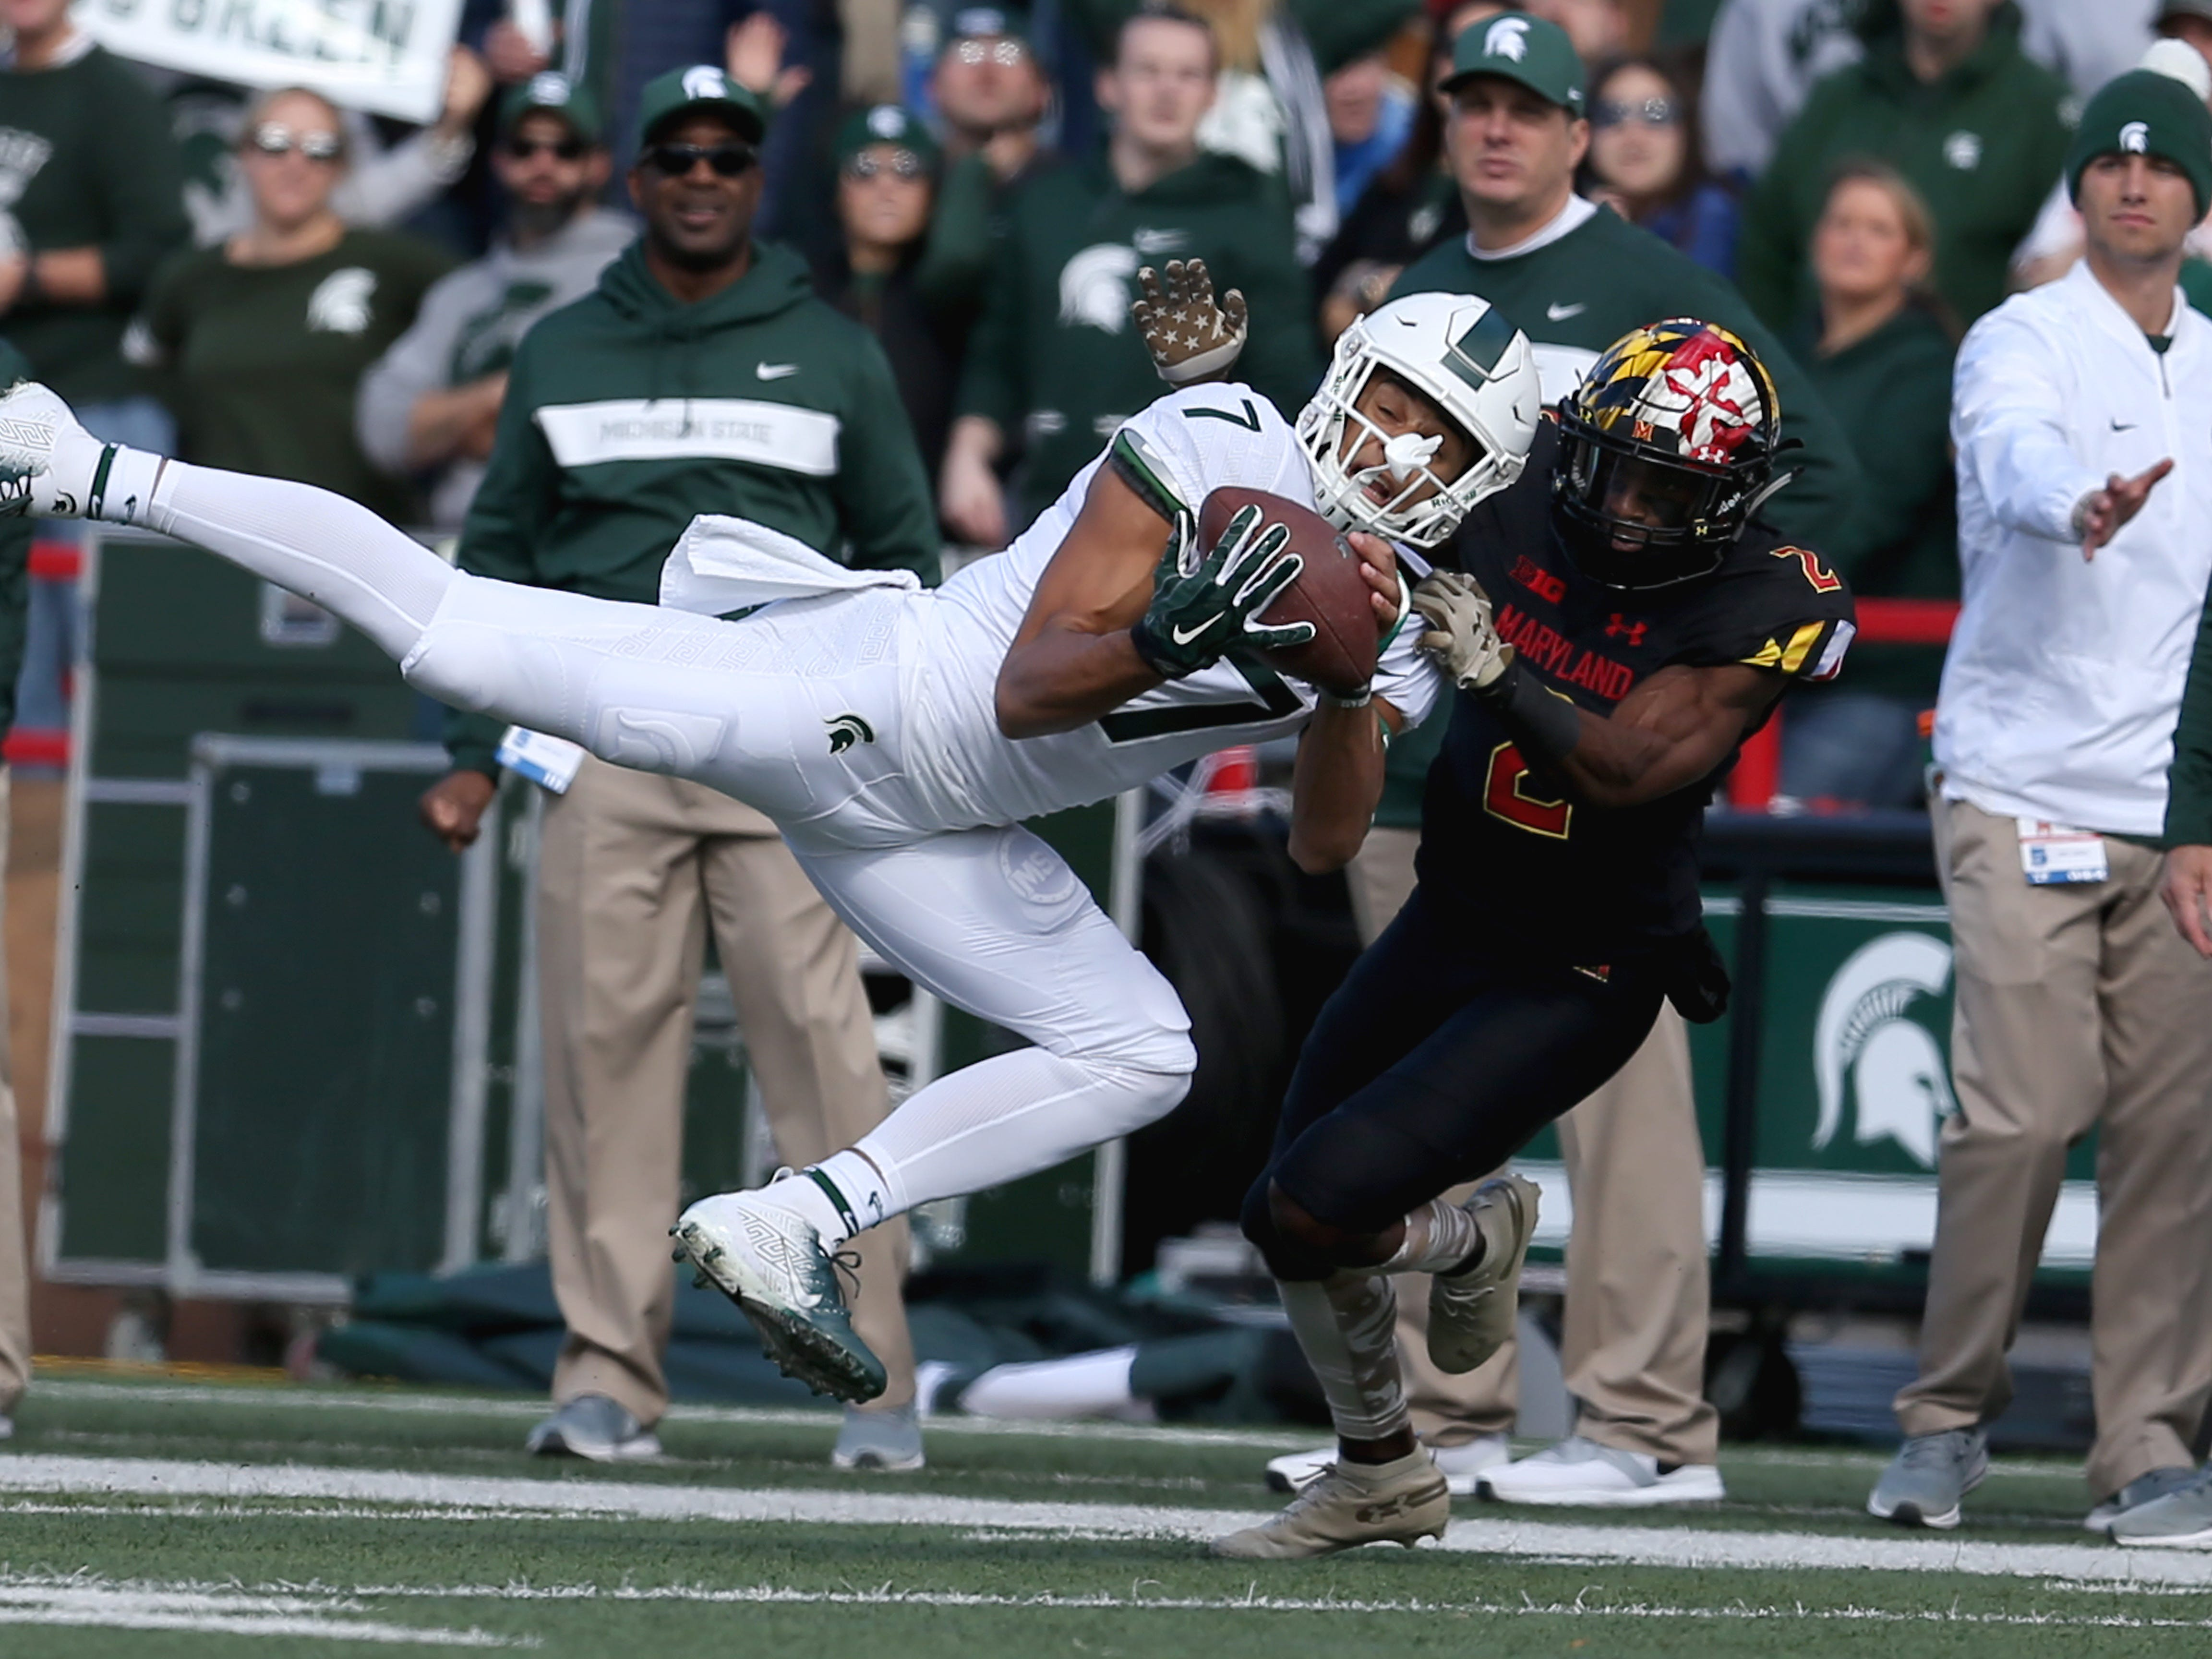 Cody White #7 of the Michigan State Spartans catches a pass against RaVon Davis #2 of the Maryland Terrapins during the first half at Capital One Field on November 3, 2018 in College Park, Maryland.